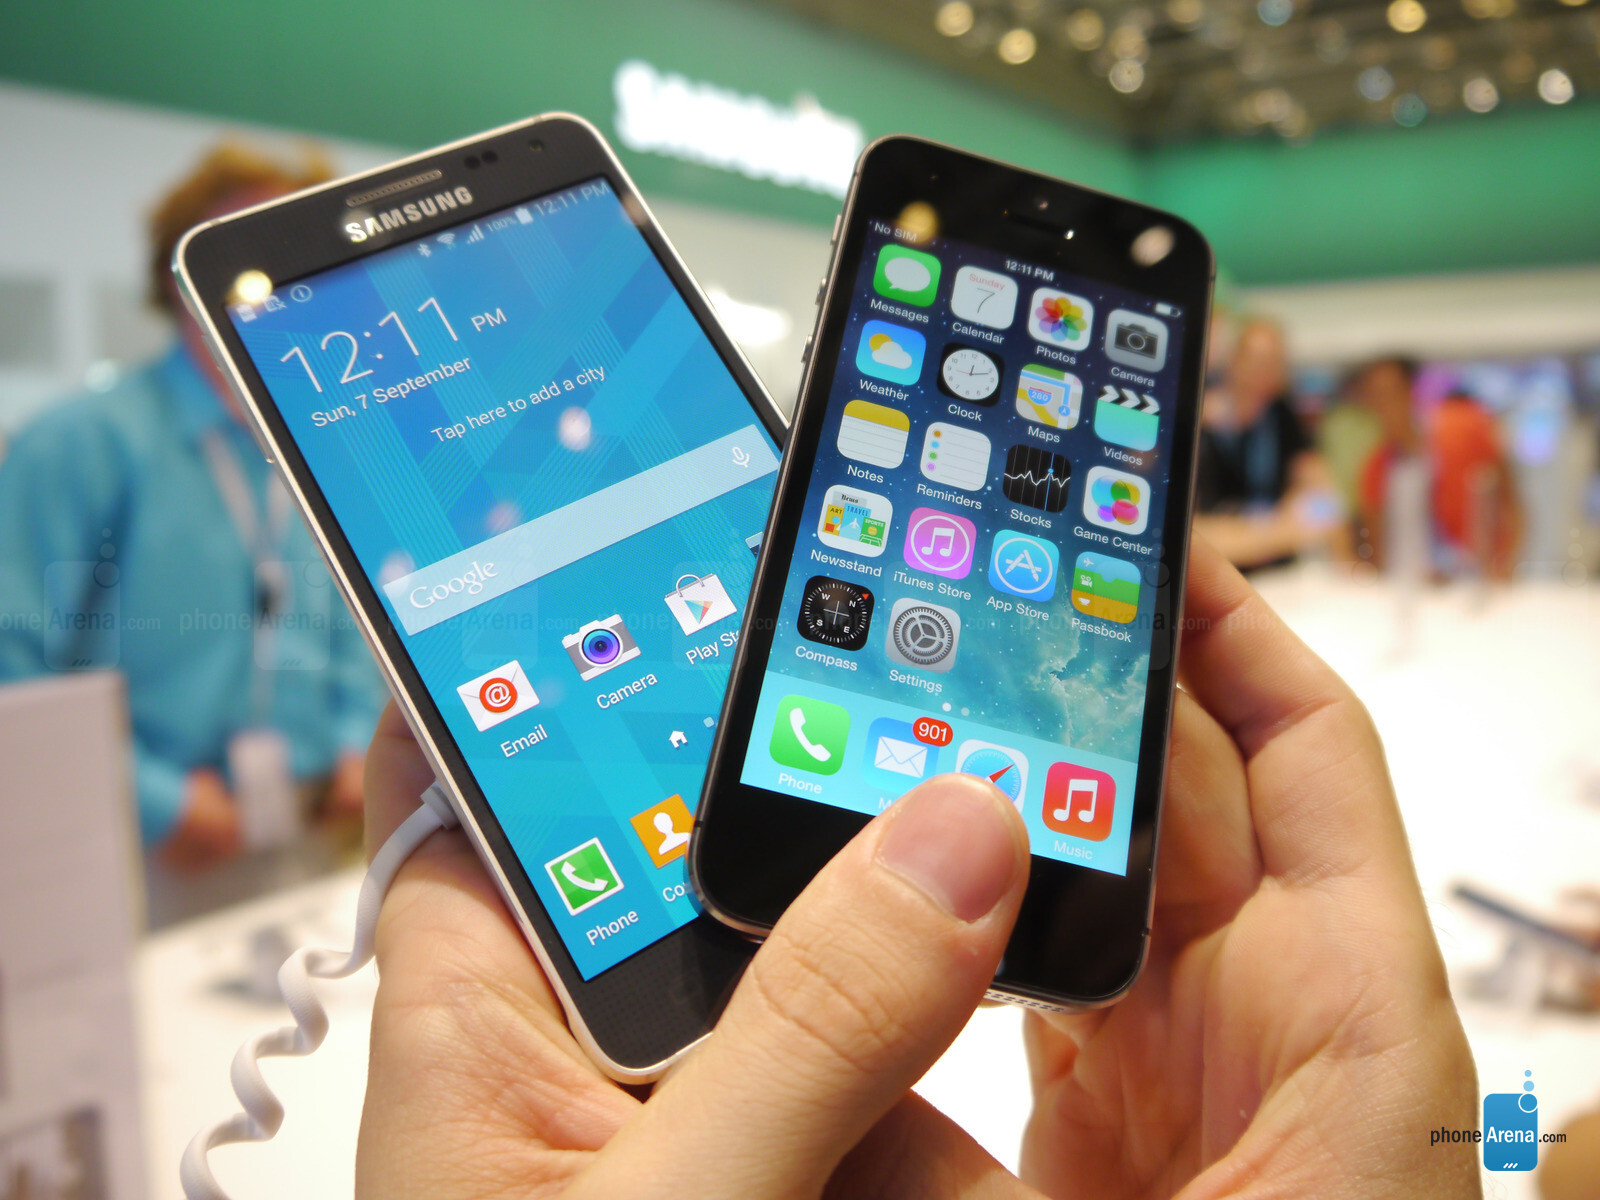 Samsung Galaxy Alpha Vs IPhone 5s First Look